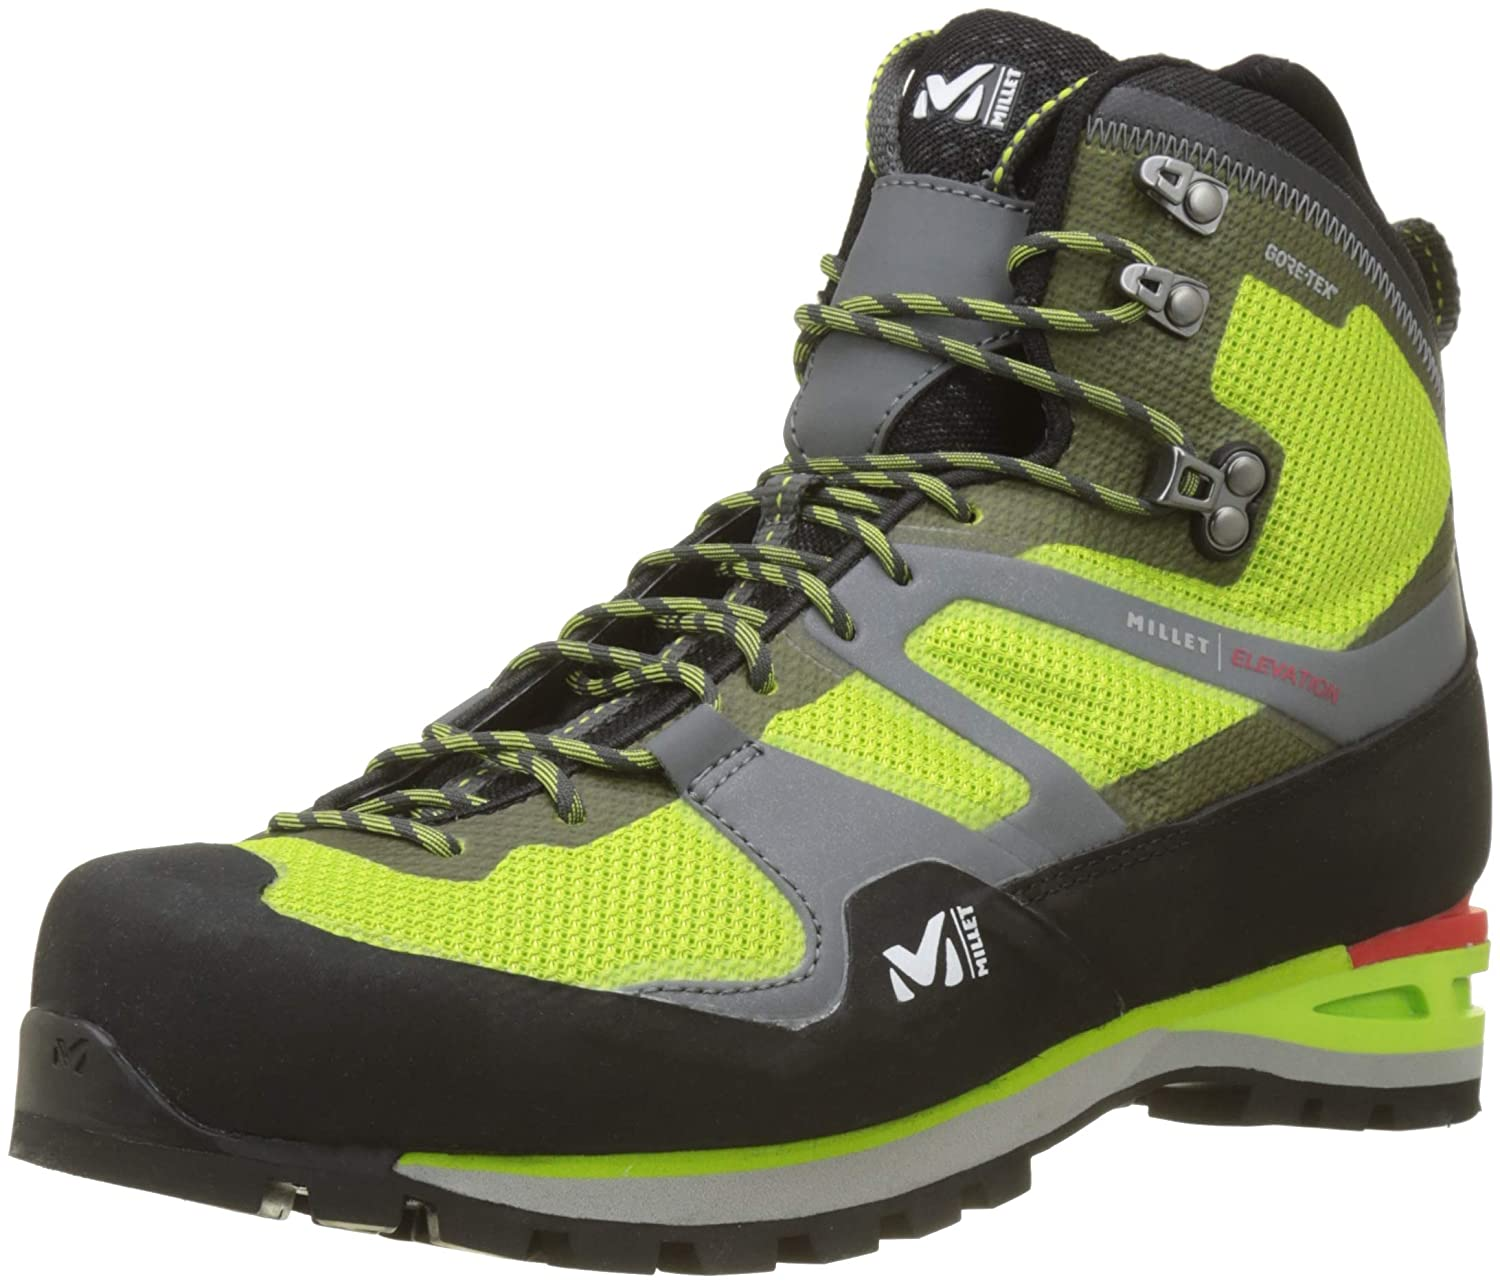 Millet Elevation GTX Boot 11.0 MIG1359